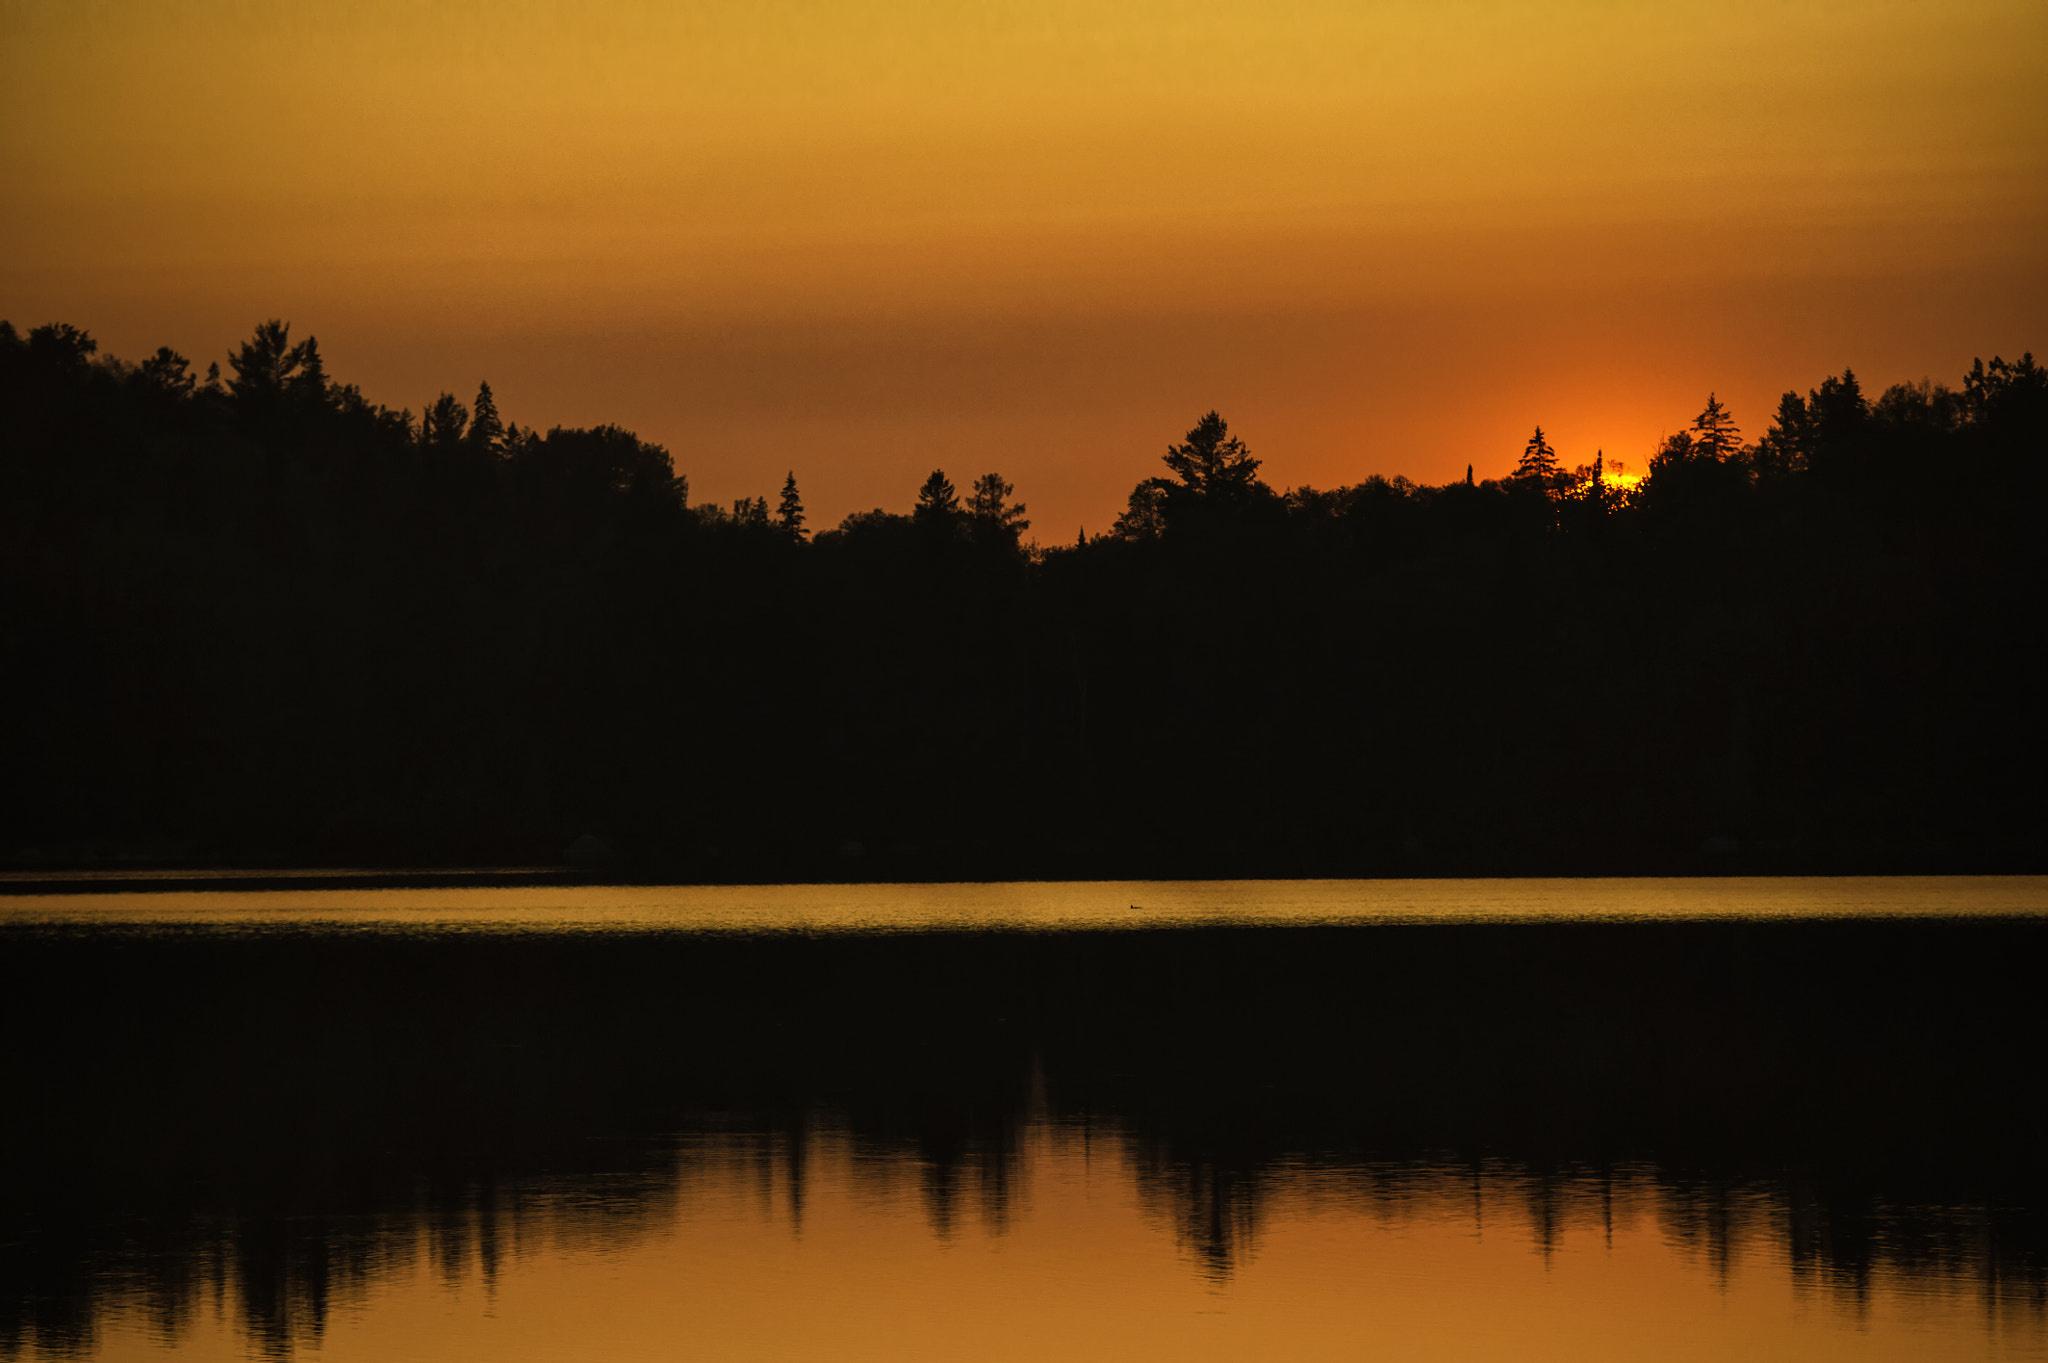 Photograph Algonquin Park Sunset by Daniel Parent on 500px